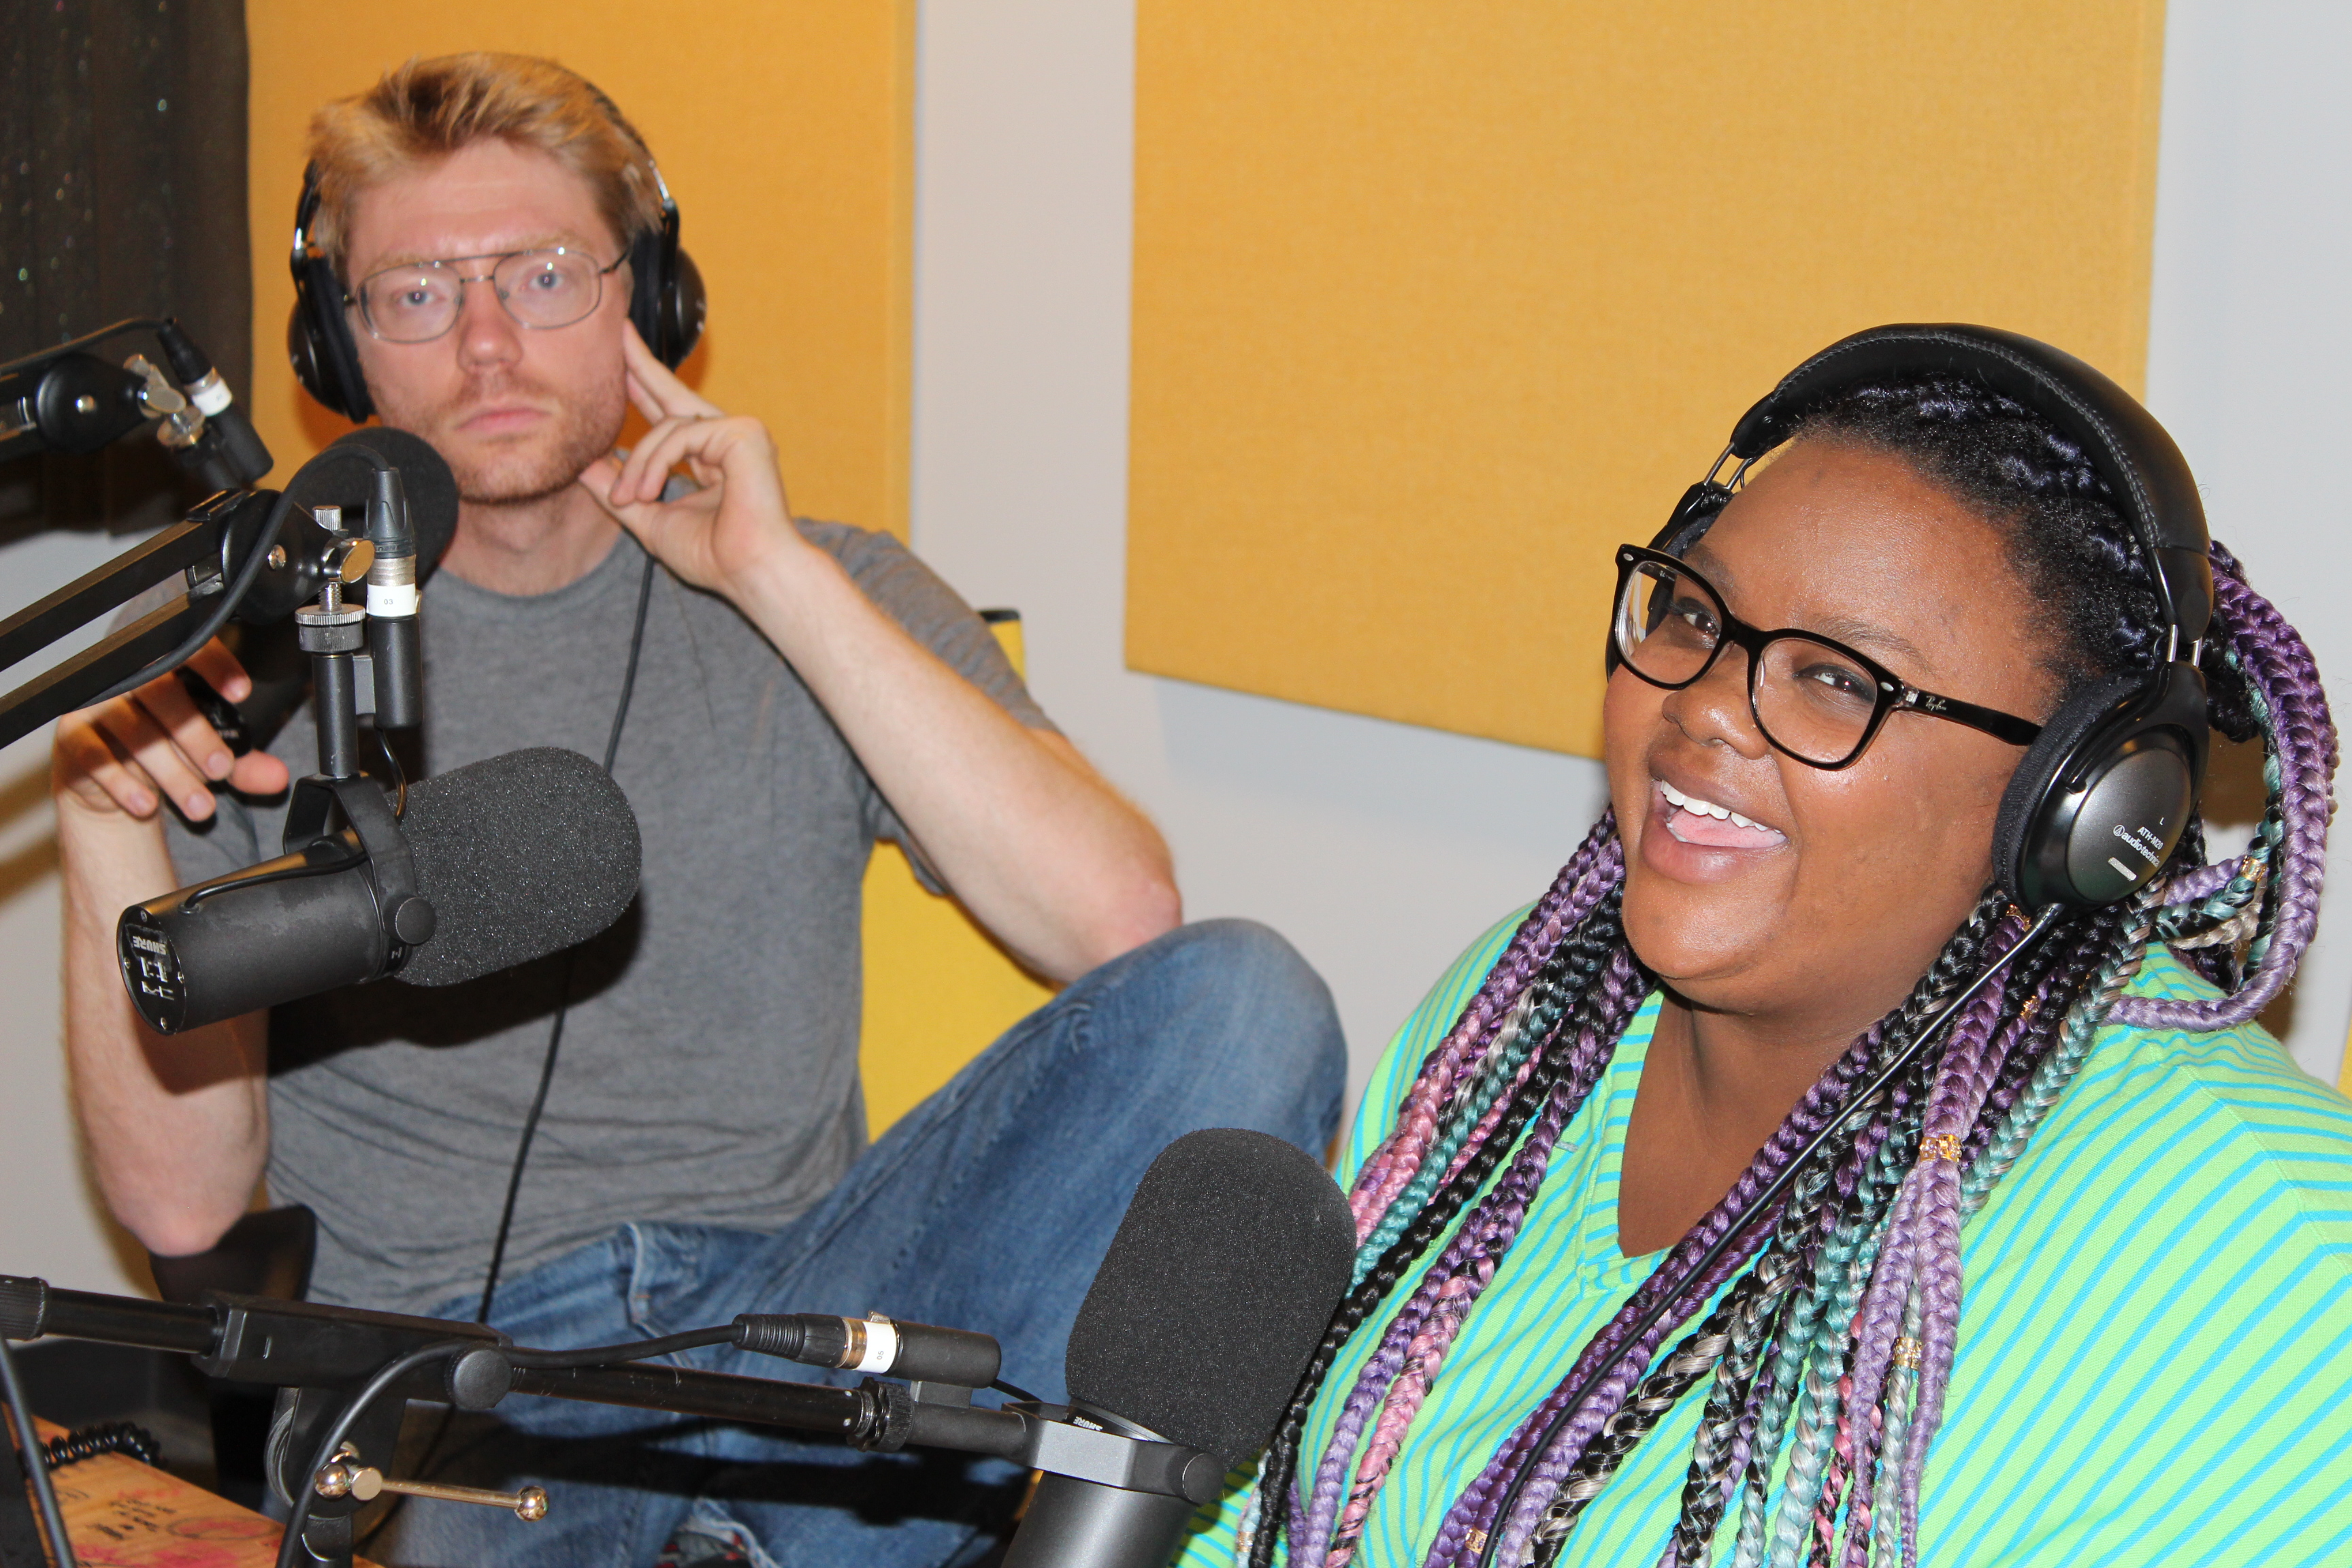 Nicole Byer Our Close Friend Again Episode 197 Of